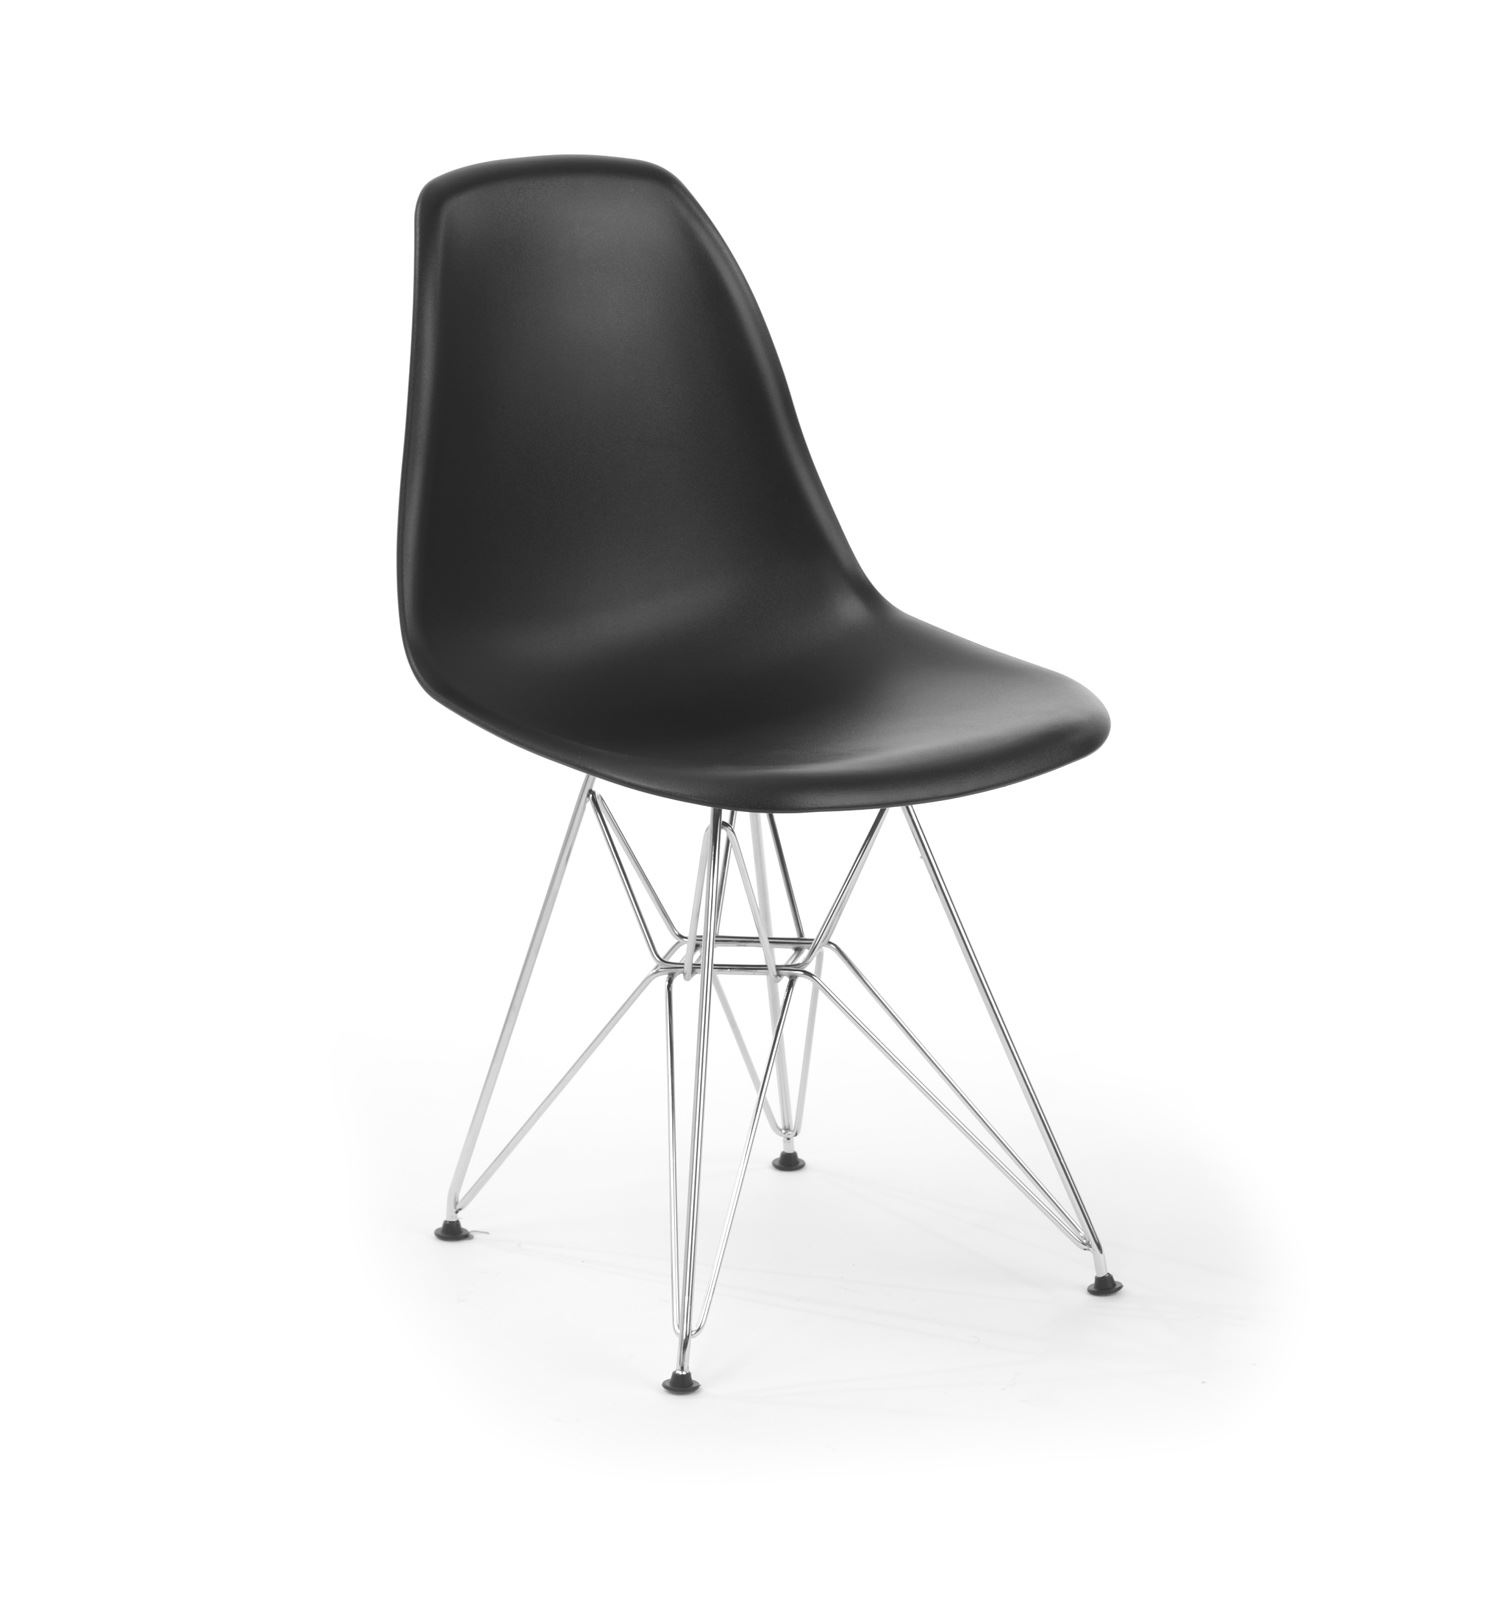 Eames Inspired Lounge Chairs Eames Inspired Dsw Dsr Rar Daw Style Chair Lounge Dining